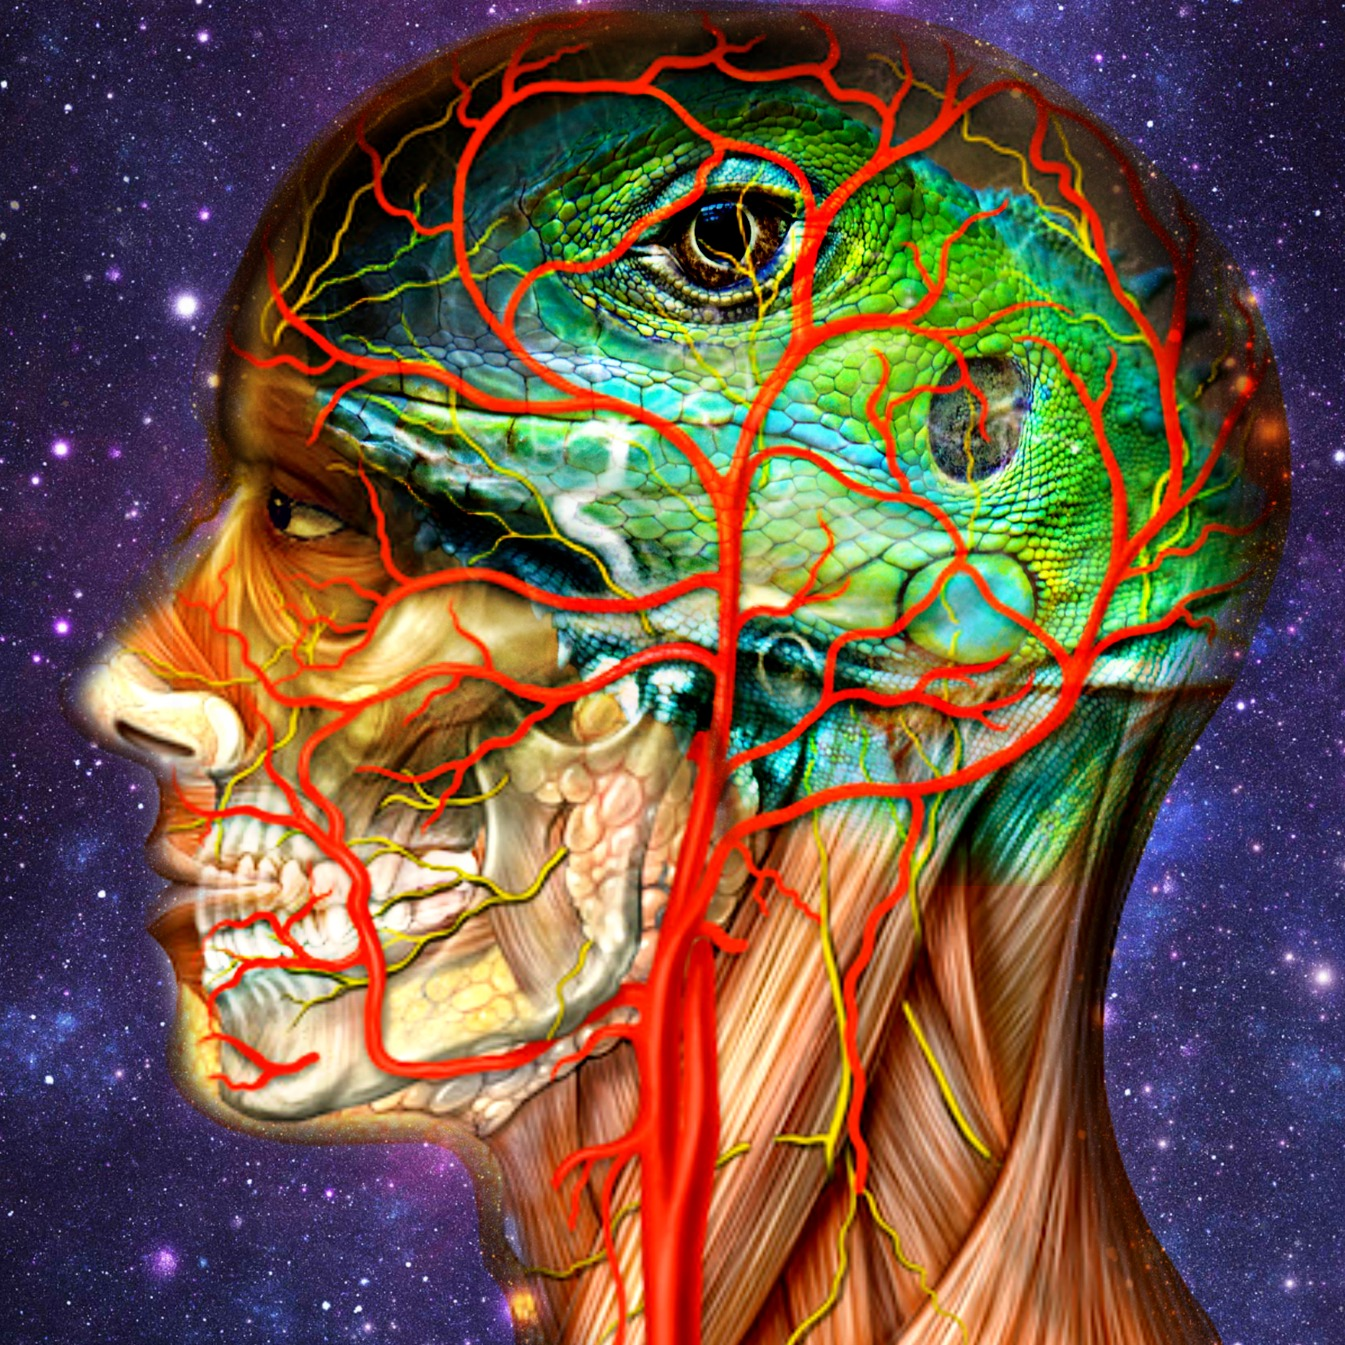 Art Human Anatomy Lizard Brain Fine Digital Art